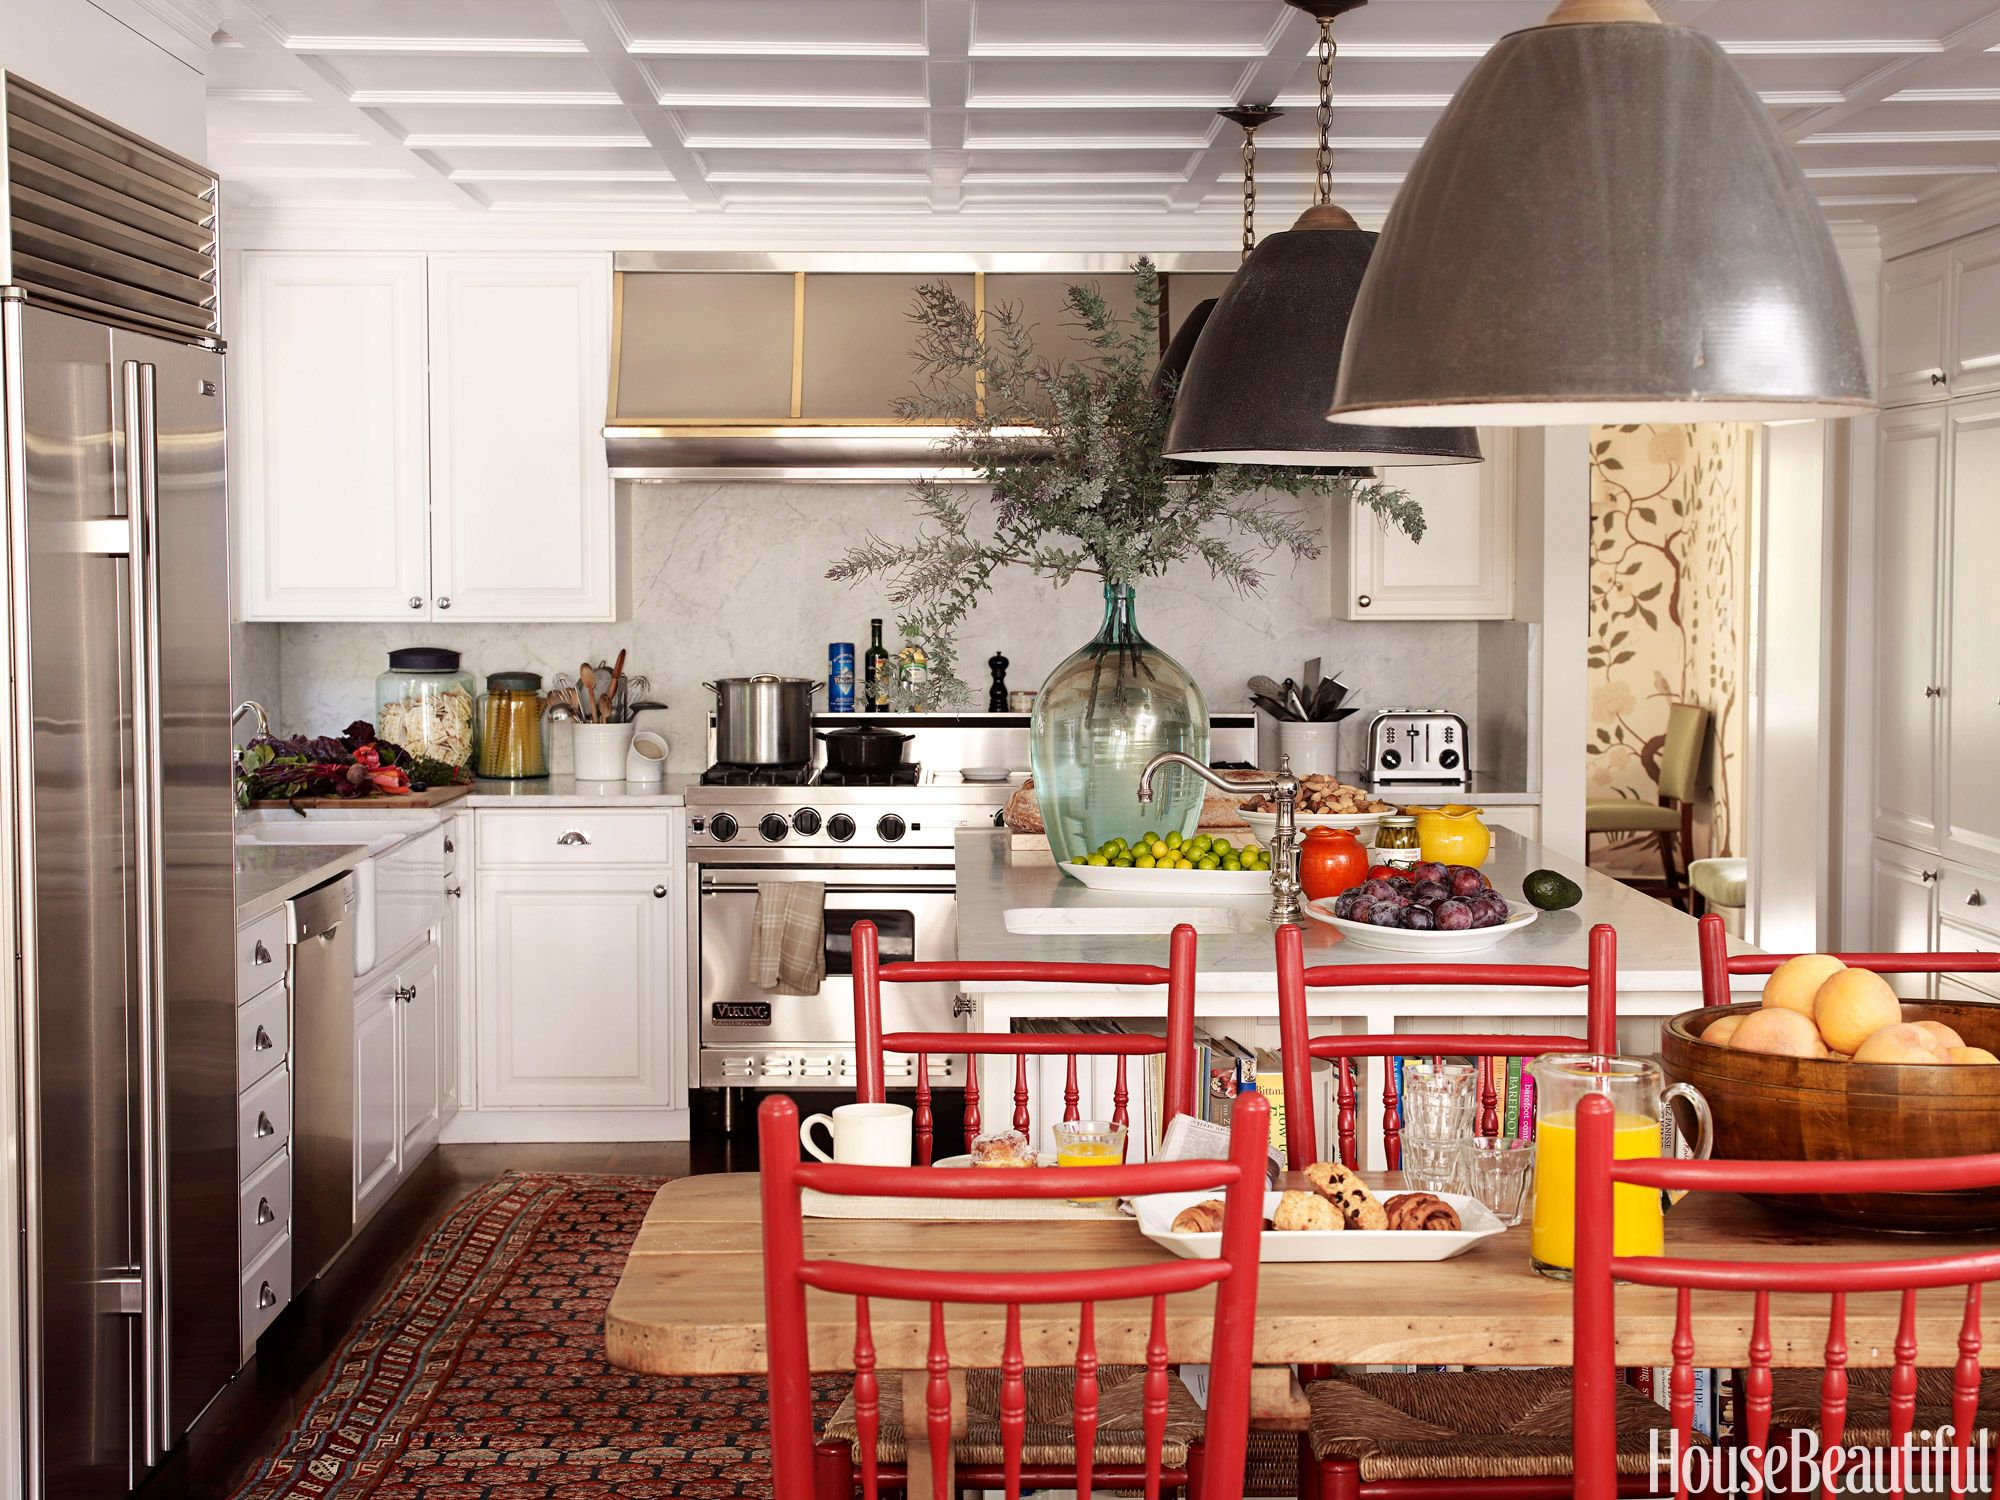 Ask a Designer: How Do I Update My Kitchen Cabinets?